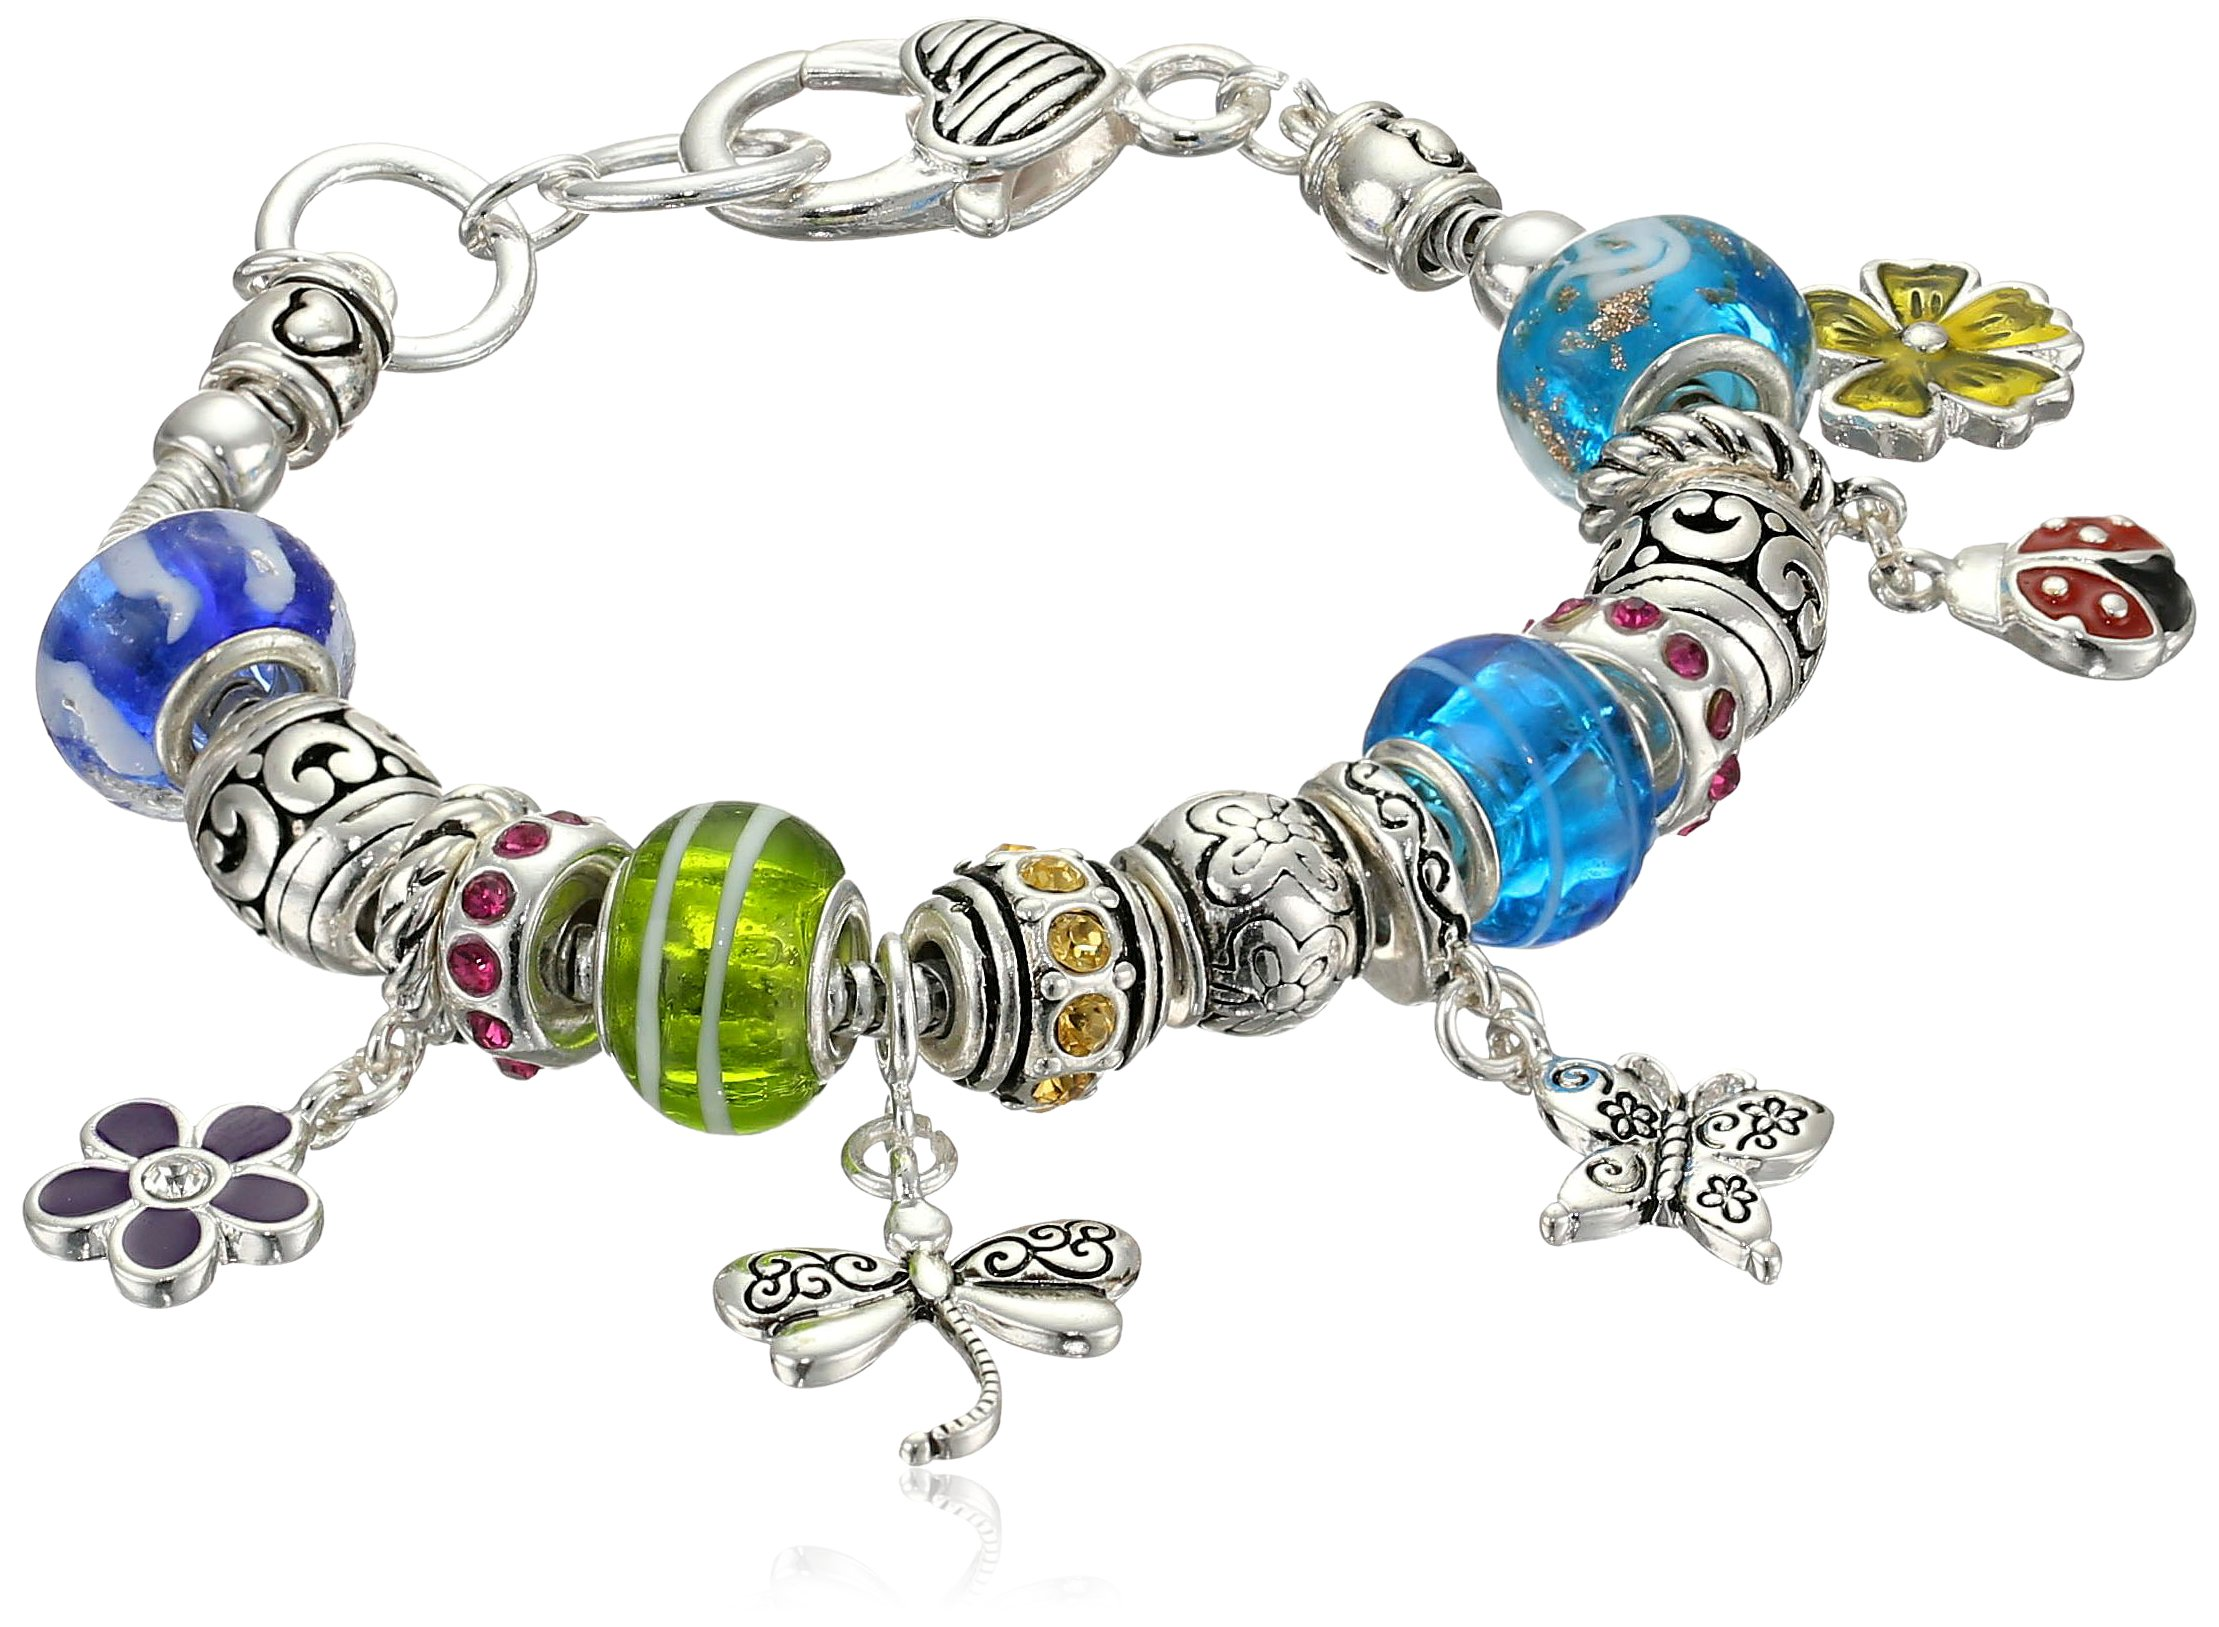 Spring Time Silver Tone Metal and Glass Bead Charm Bracelet, 7.5''